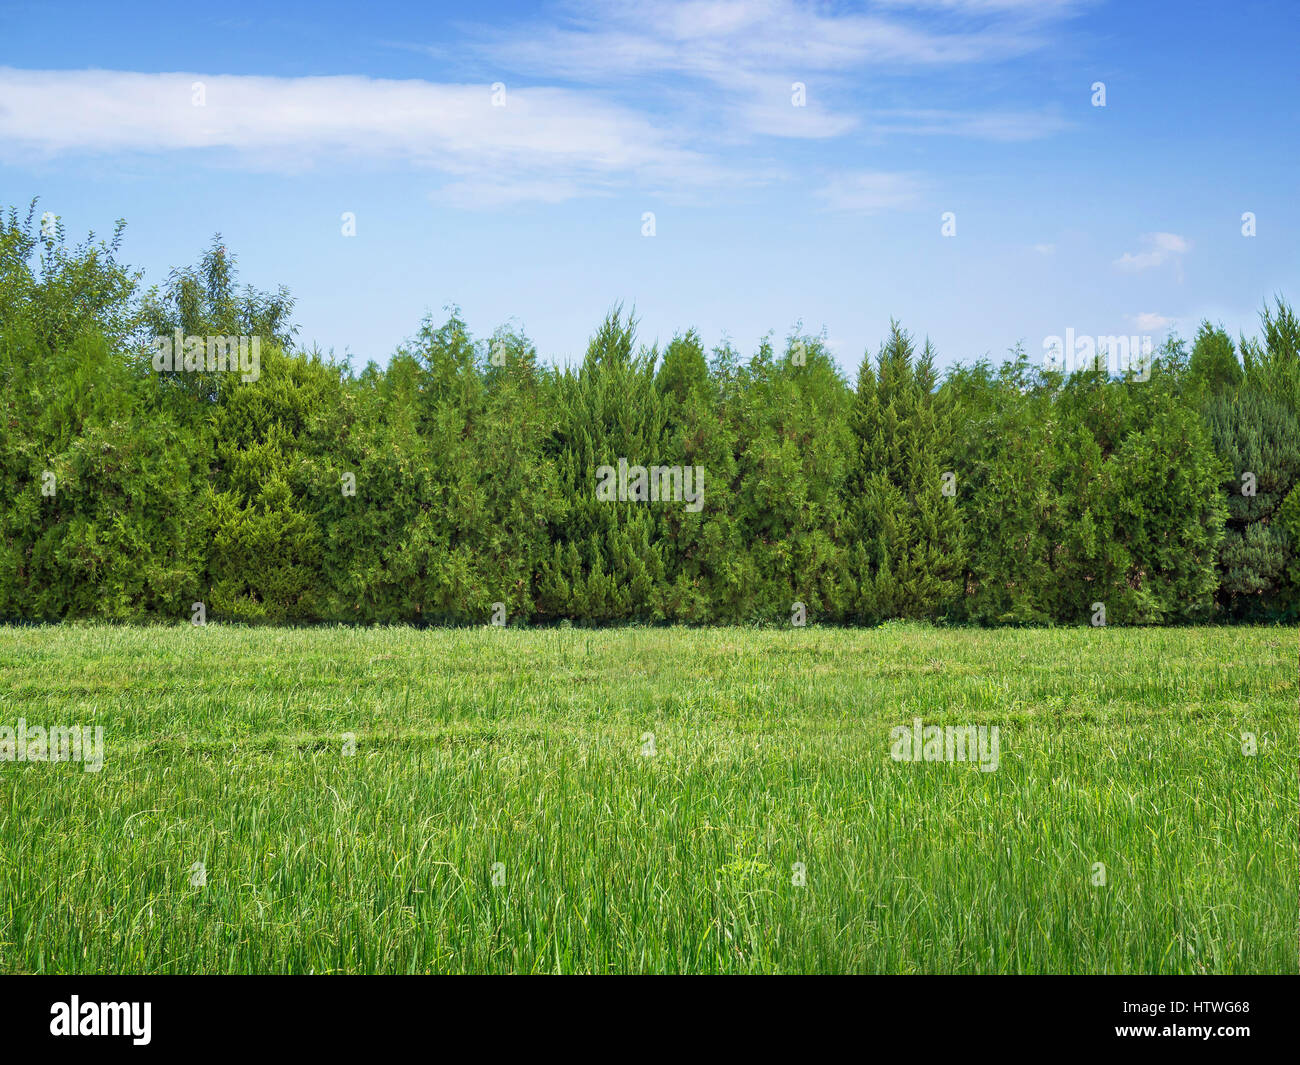 Green grass and trees - Stock Image